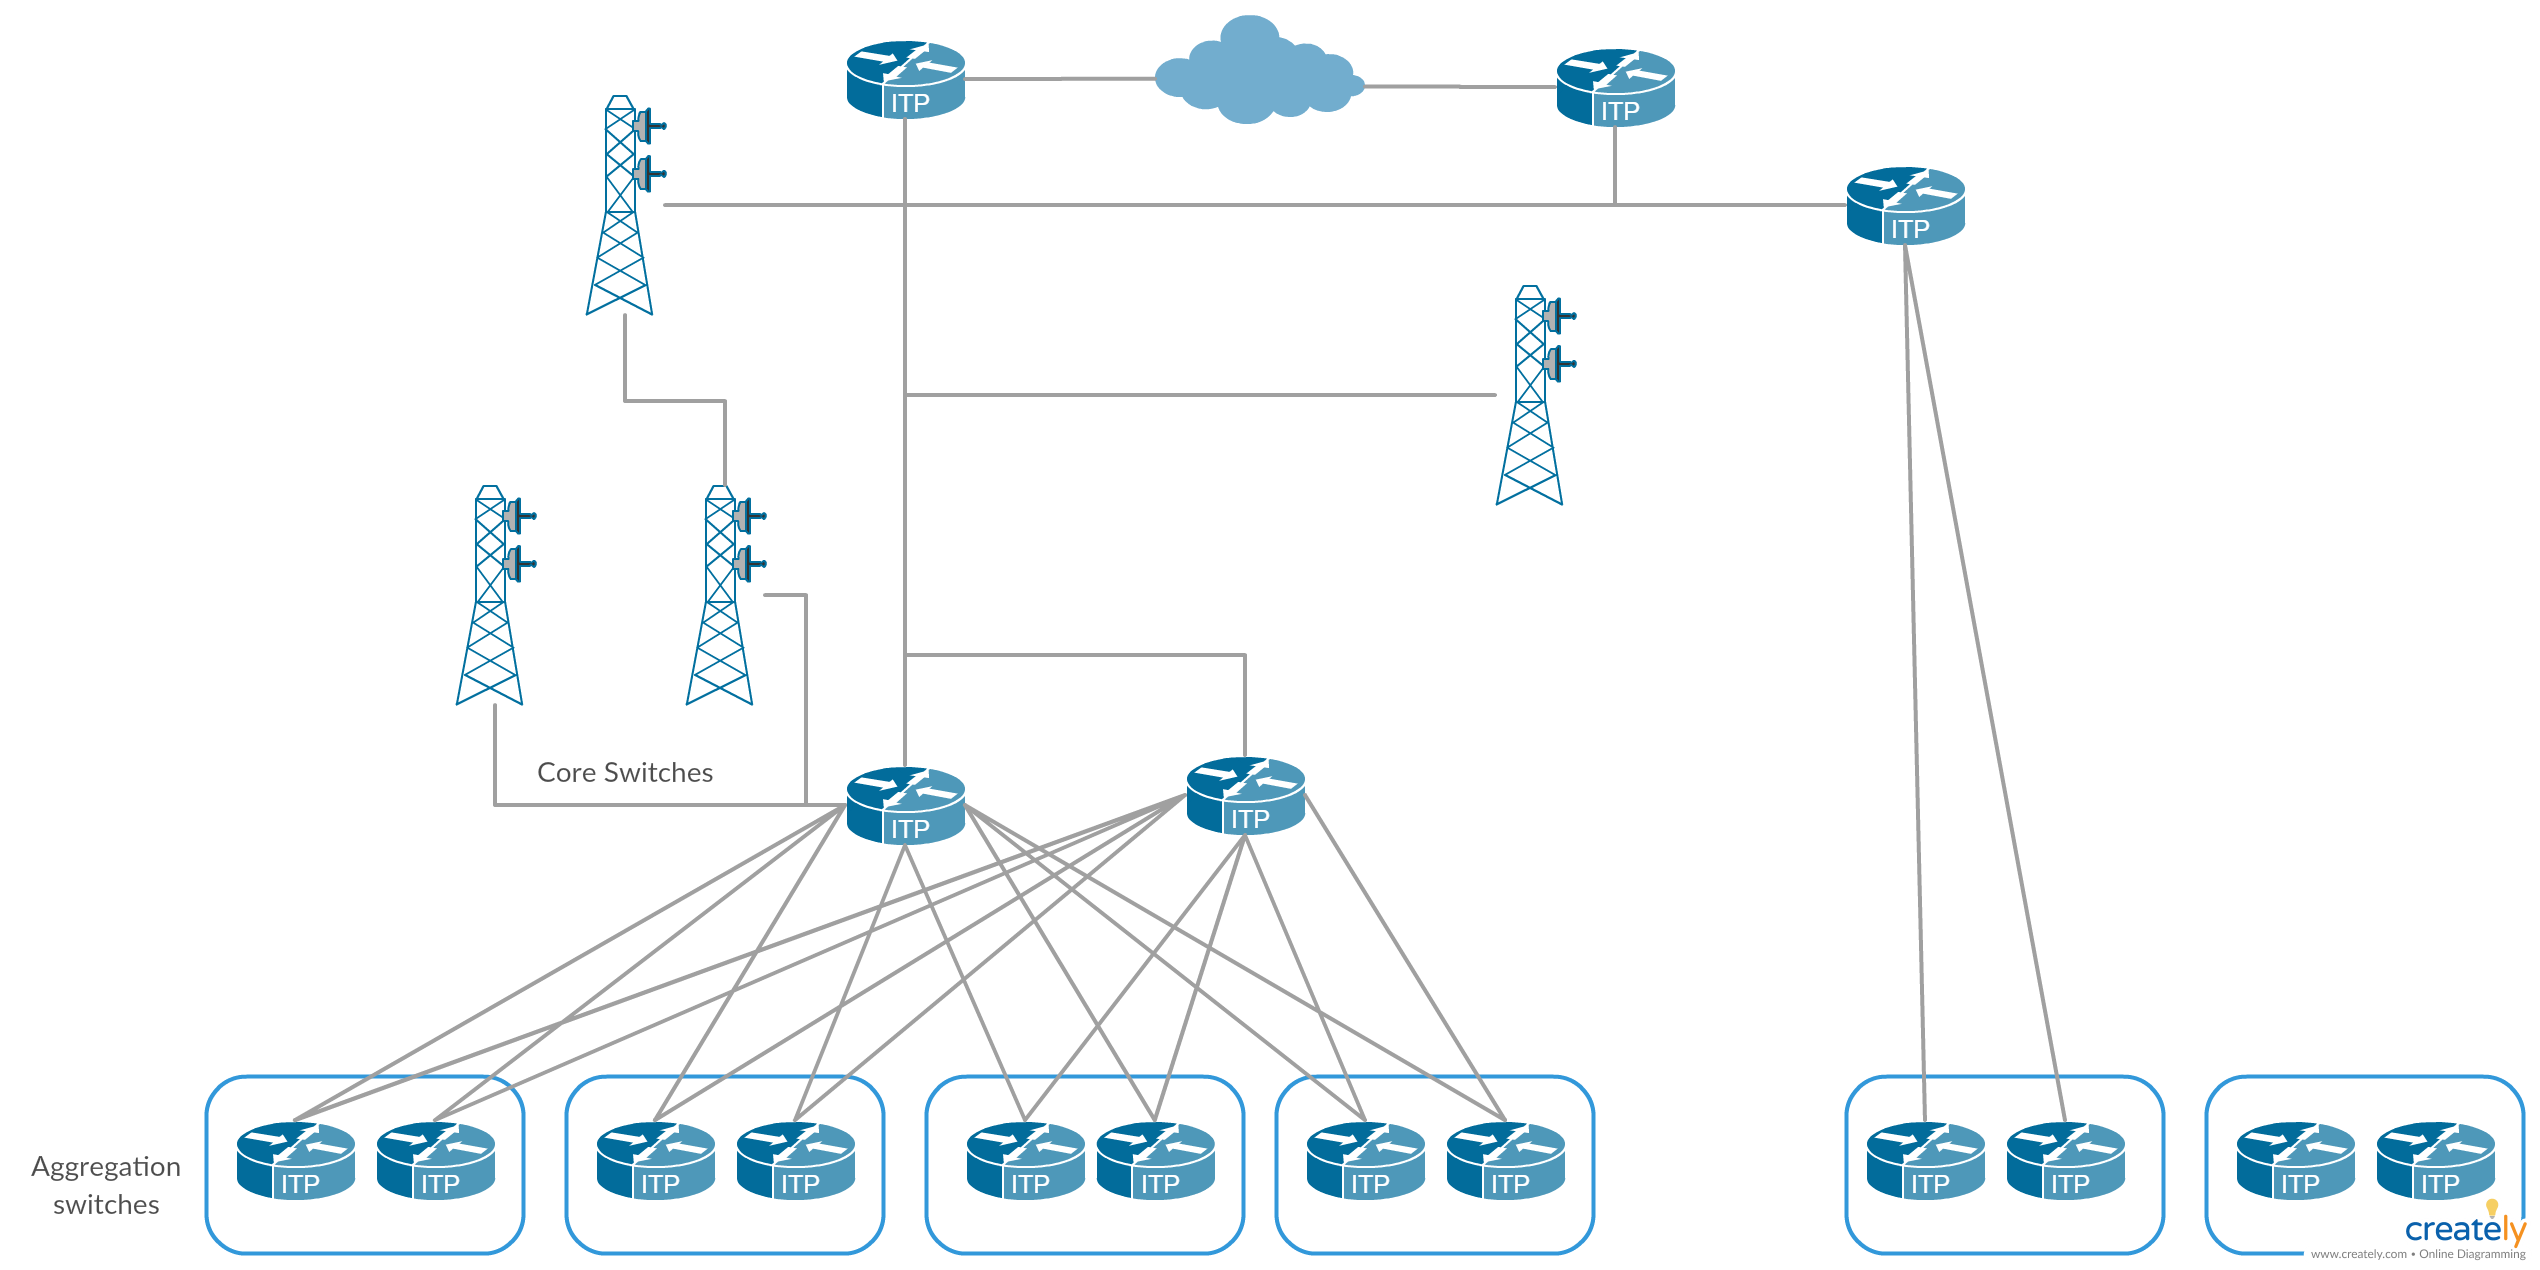 hight resolution of network infrastructure map to visualize network topology diagrams in creately you can edit this template and create your own diagram